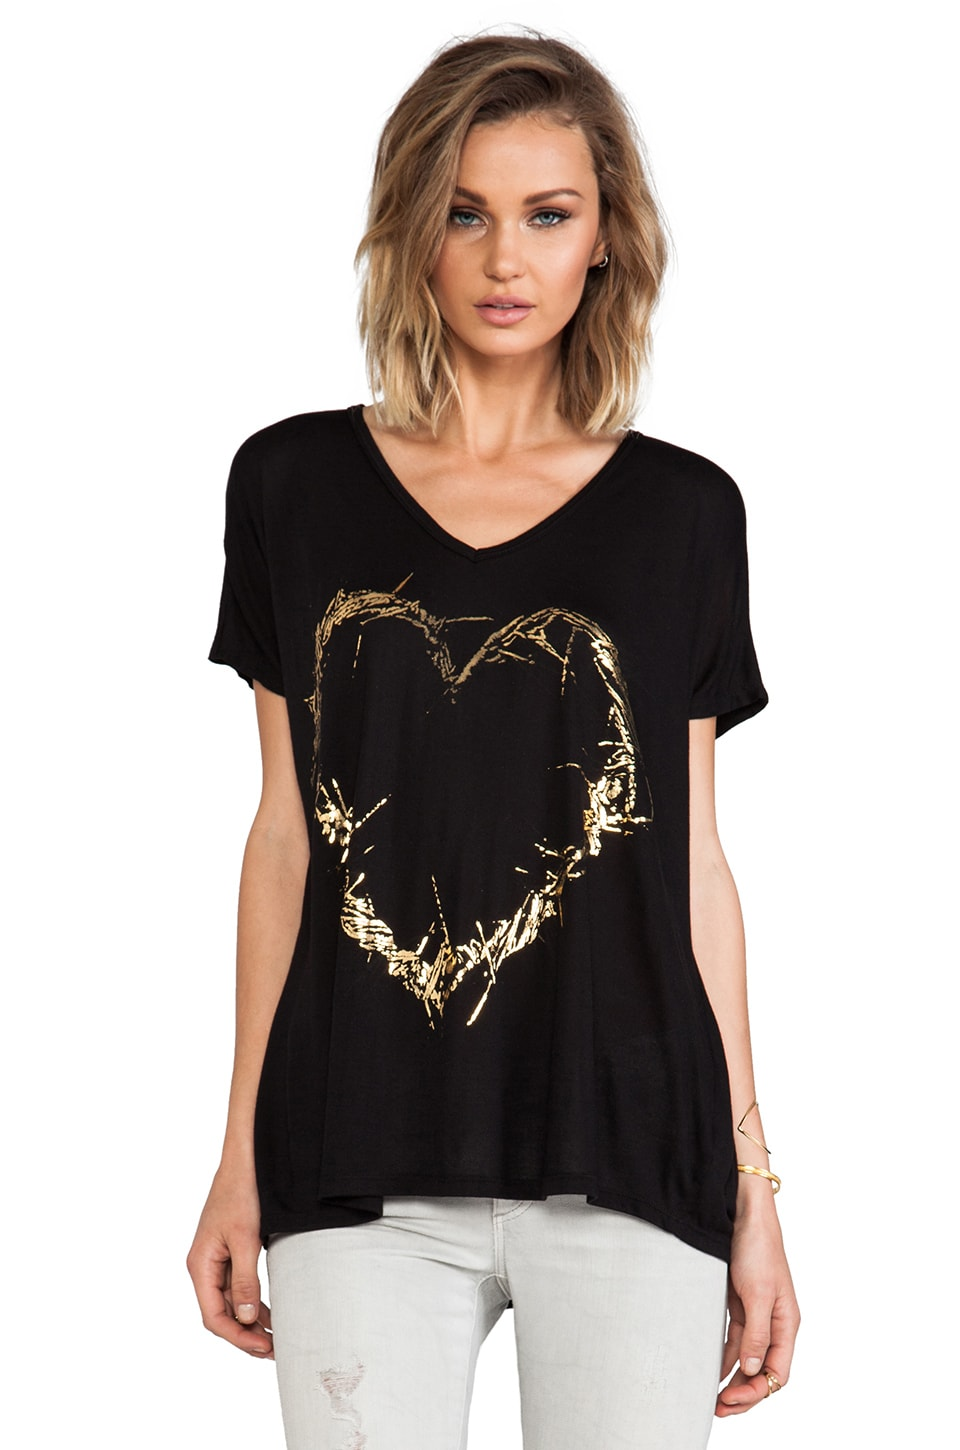 Lauren Moshi April Foil Thorn Heart Oversized V-Neck Tee in Black